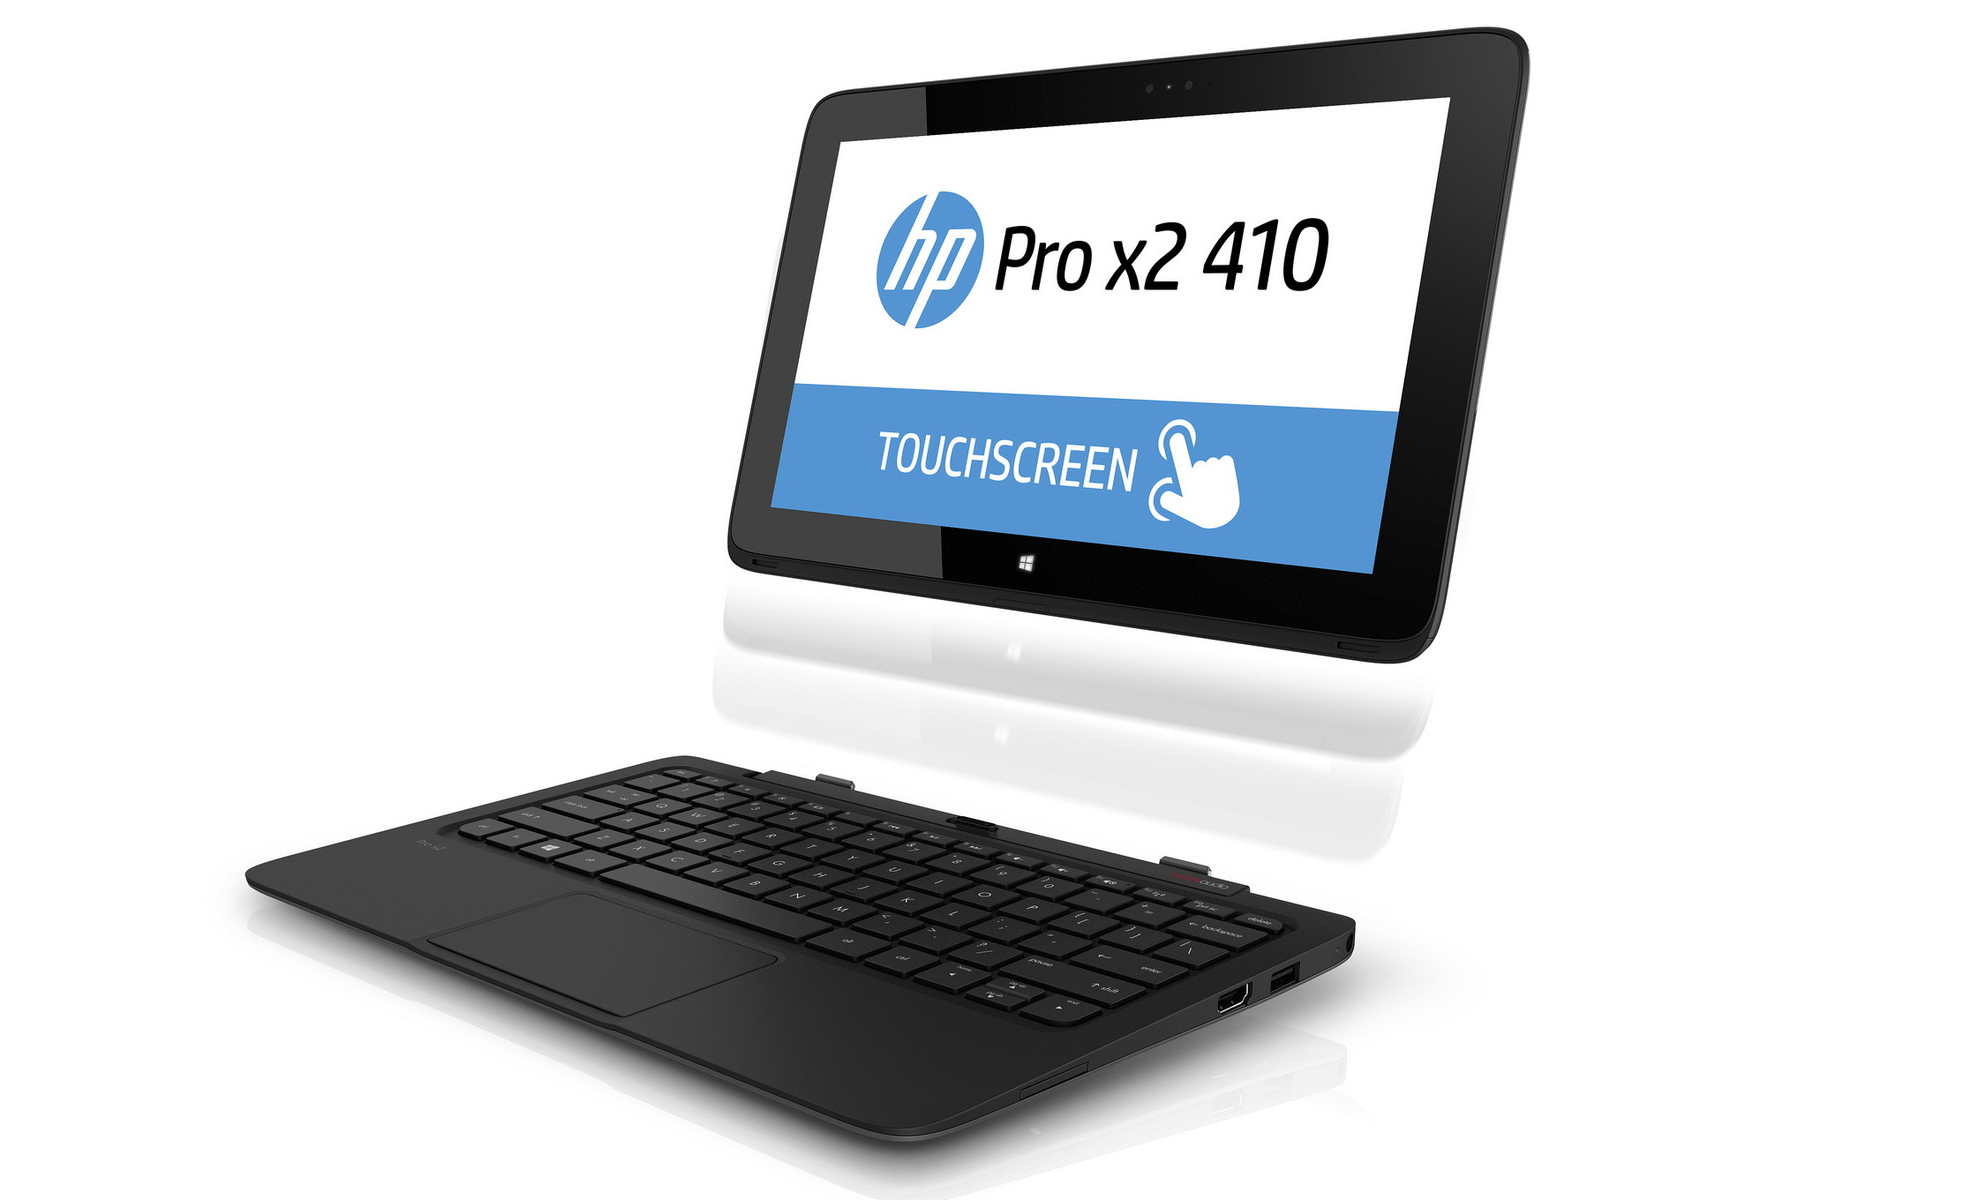 HP Pro X2 410: Top 3 Business Features